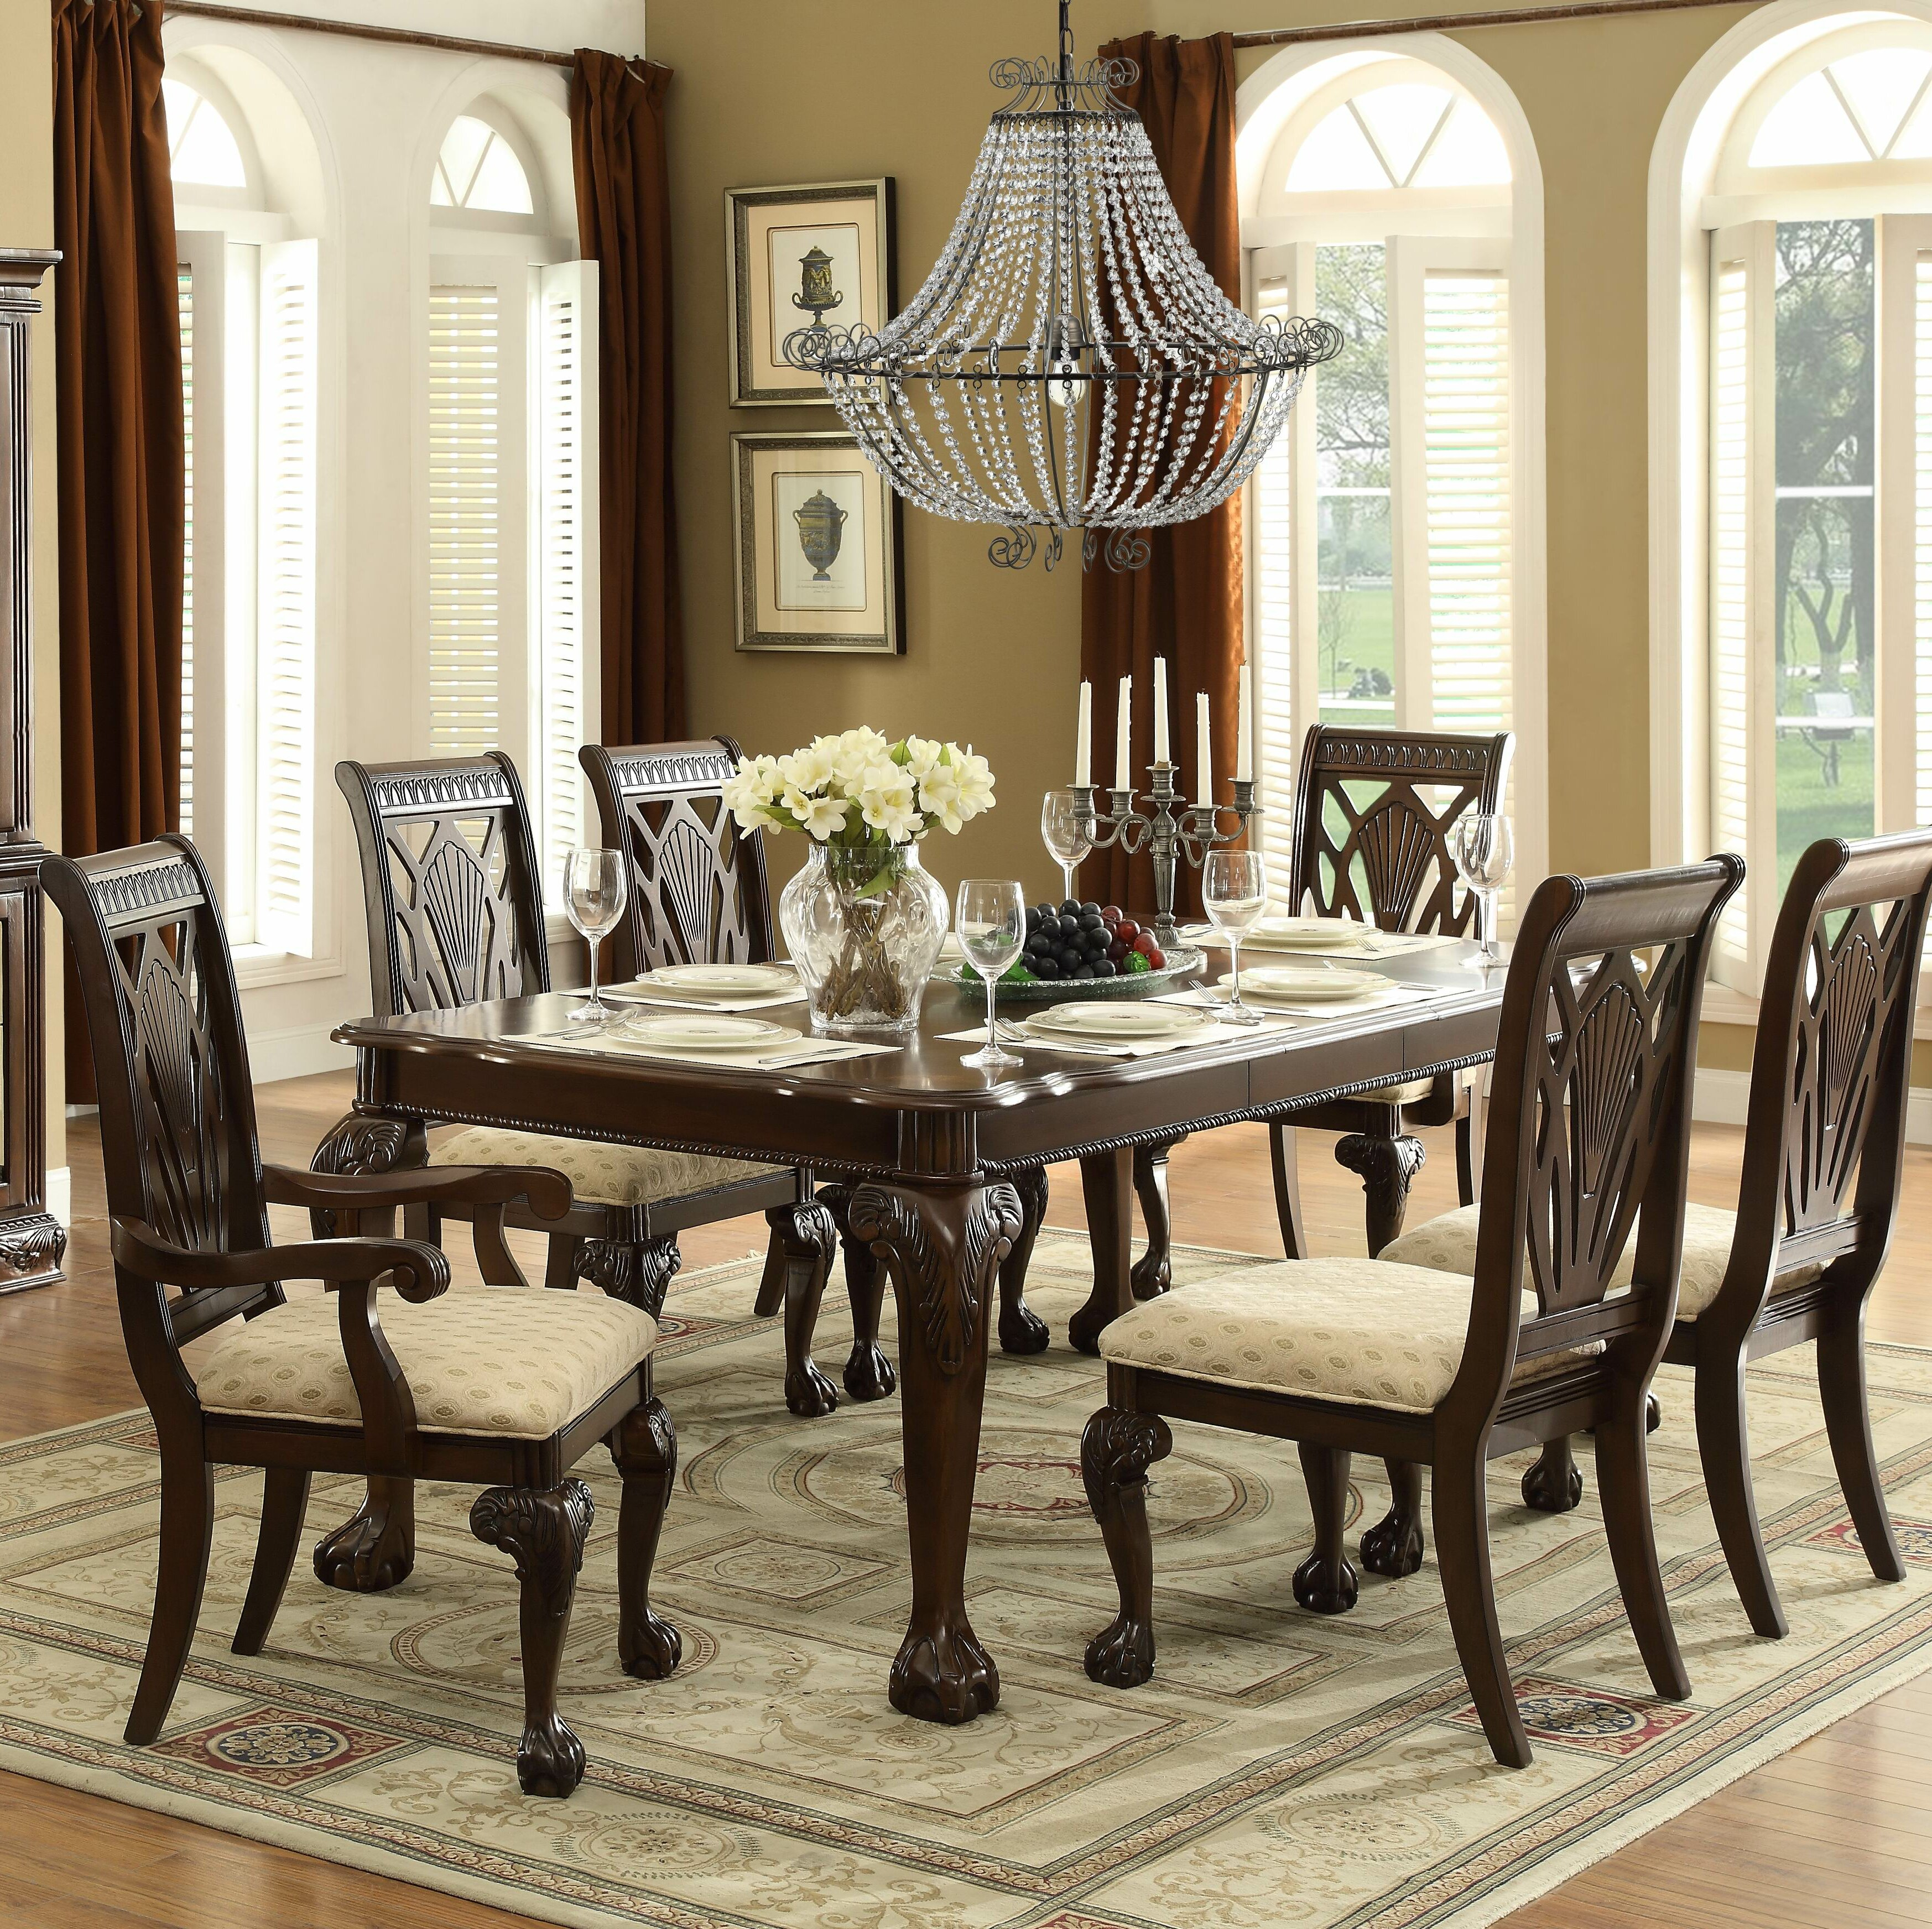 Astoria Grand Christman 7 Piece Extendable Solid Wood Dining Set For Most Recent Laconia 7 Pieces Solid Wood Dining Sets (Set Of 7) (View 4 of 20)